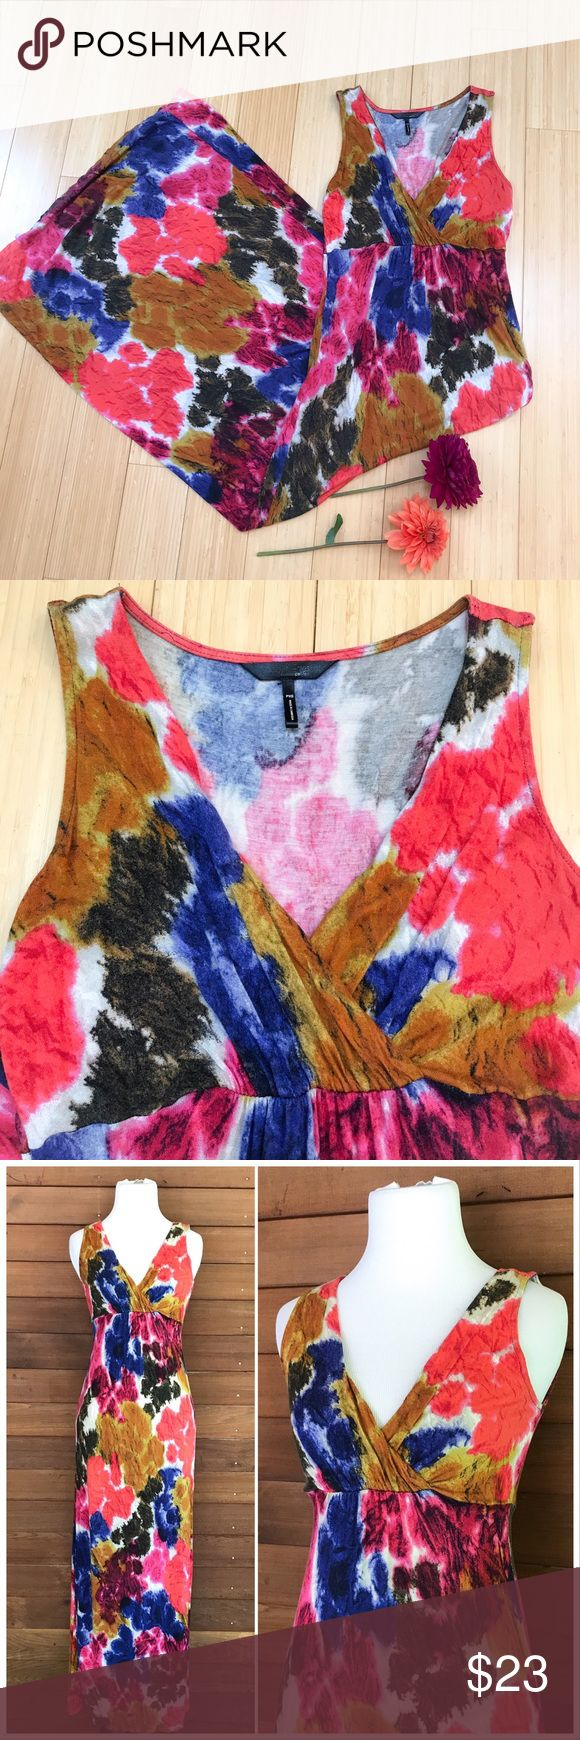 Maxi dress for short people!   Colorful, soft, XSP The perfect maxi dress for petite people! Daisy Fuentez size extra small petite gorgeous and soft maxi dress. The most vivid and beautiful colors, will fit up to a size 4 but probably not larger. Bust is flexible because of the crossover design, band below bust stretches to 14.5 inches, length is 54 inches. Really beautiful! Daisy Fuentes Dresses Maxi